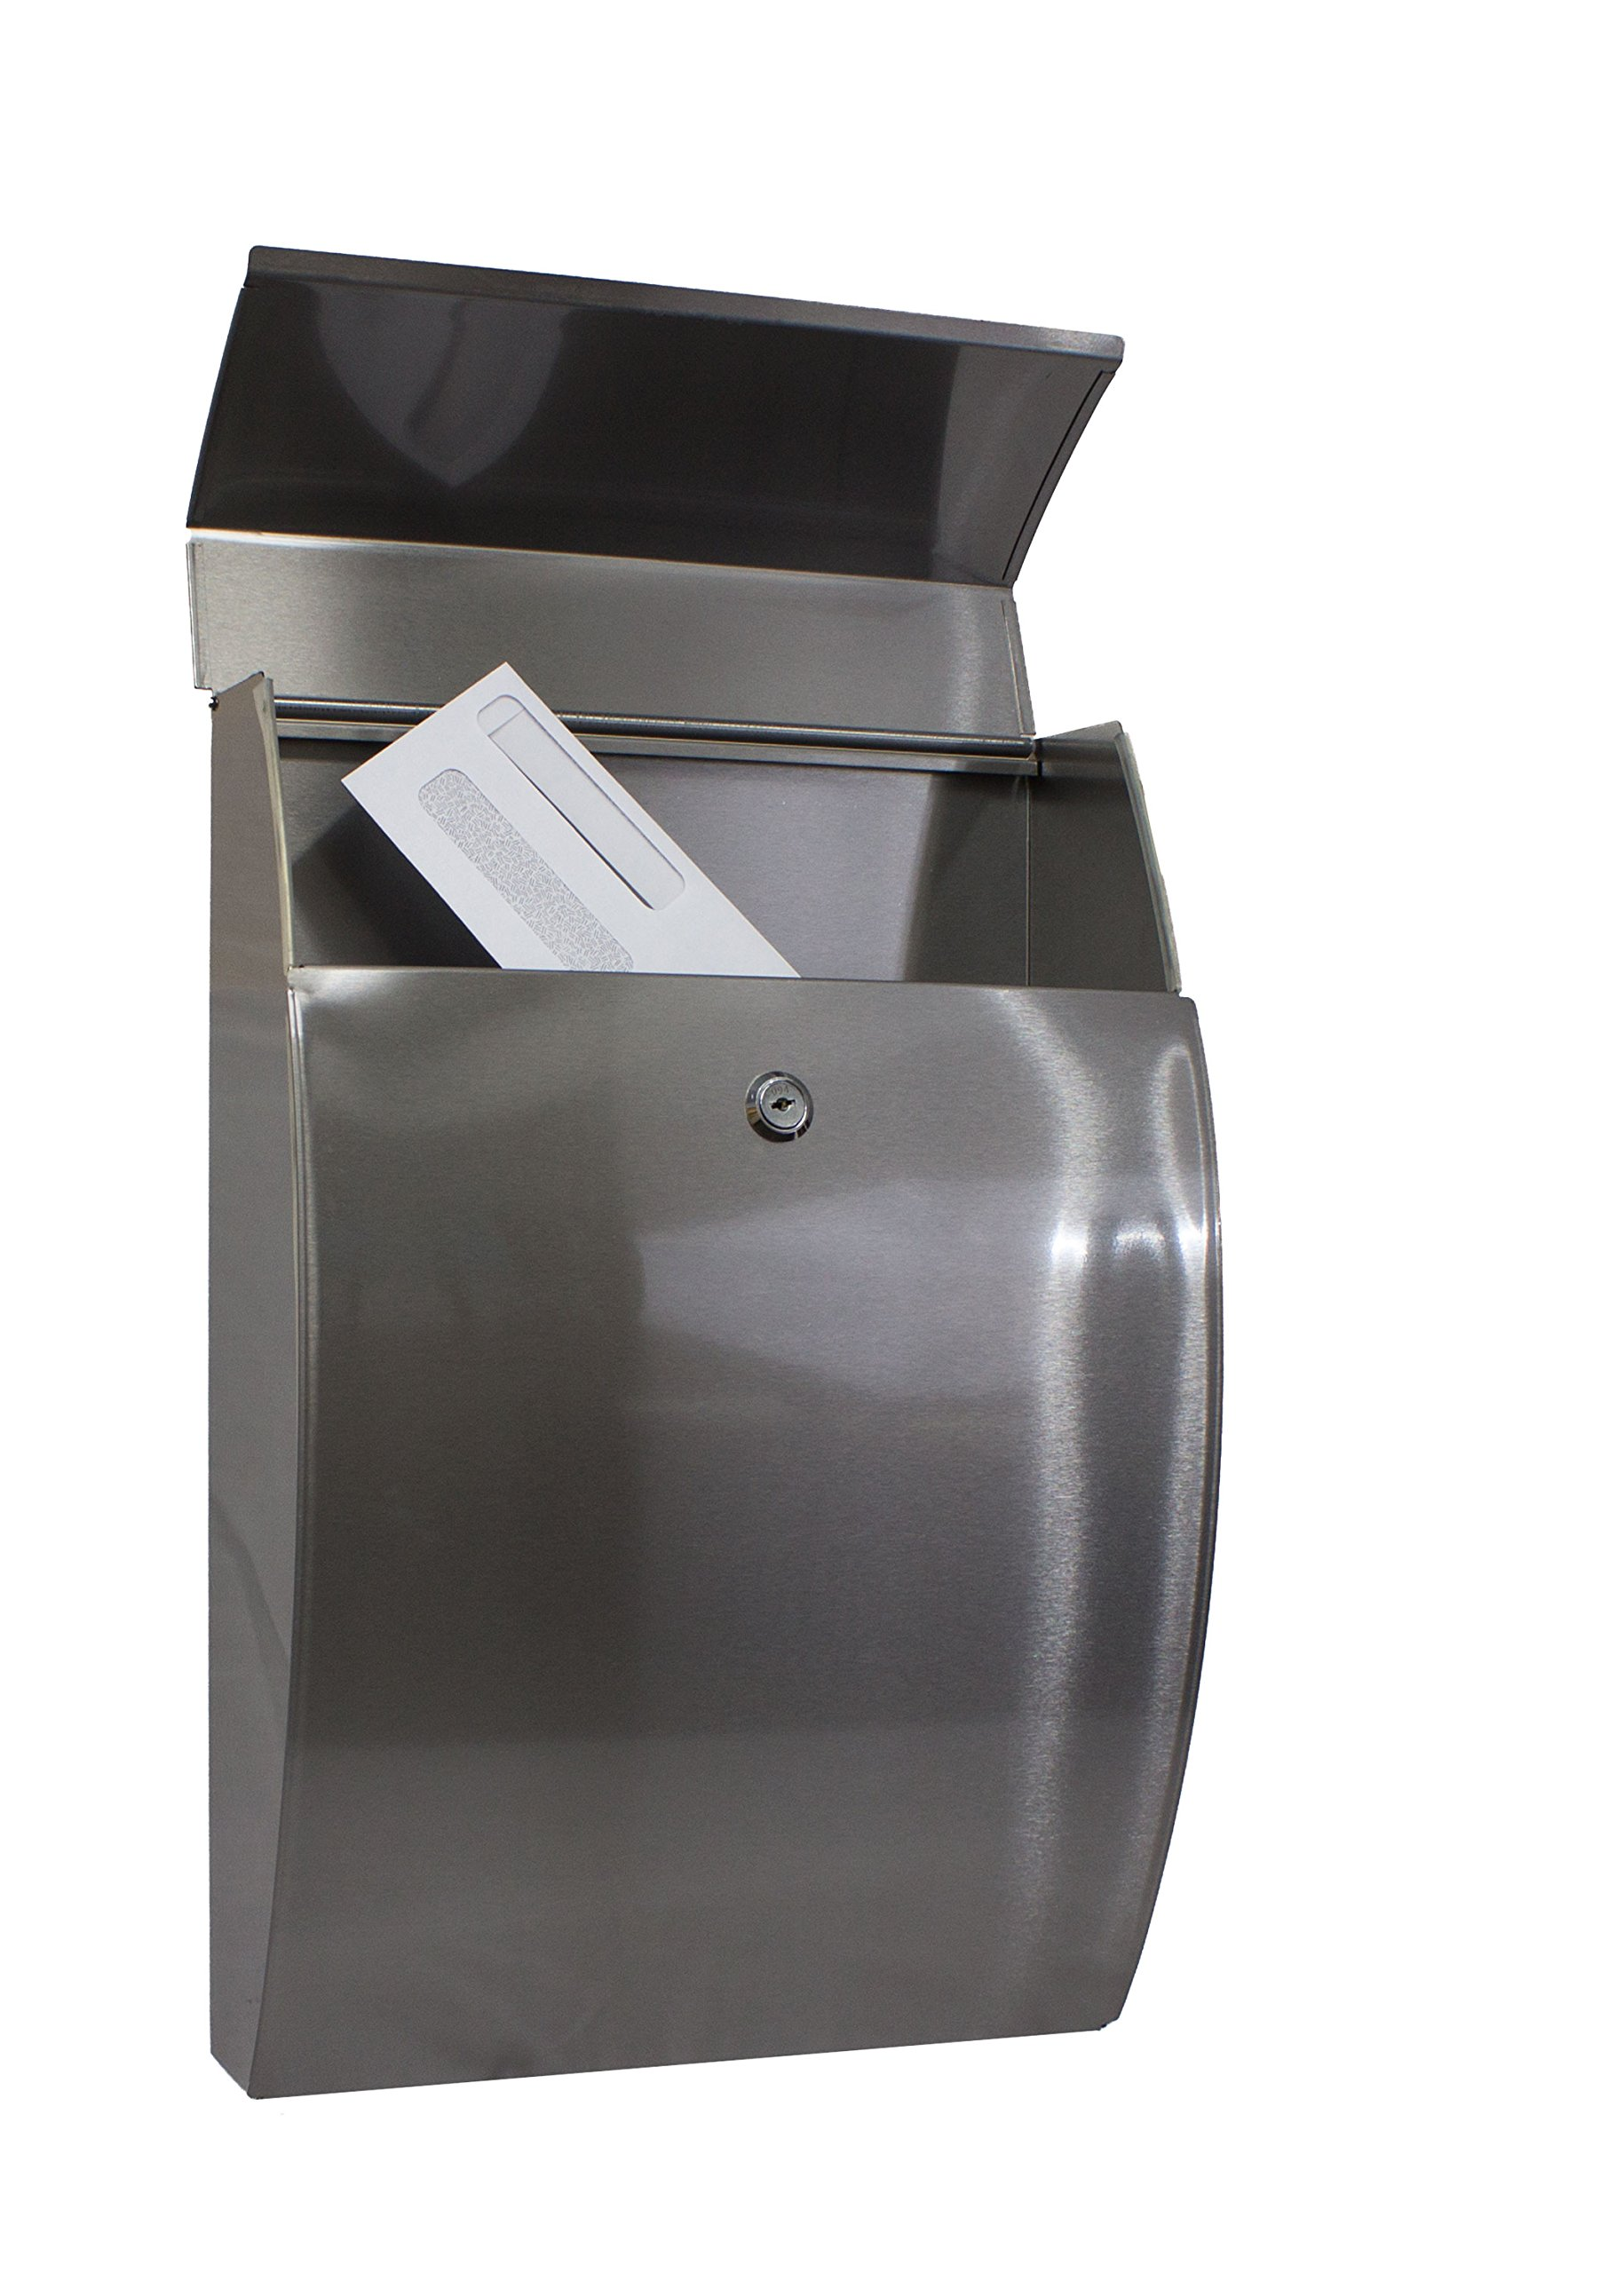 Qualarc WF-0906A Glacial Elliptical Stainless Steel Locking Wall Mount Mailbox, Silver